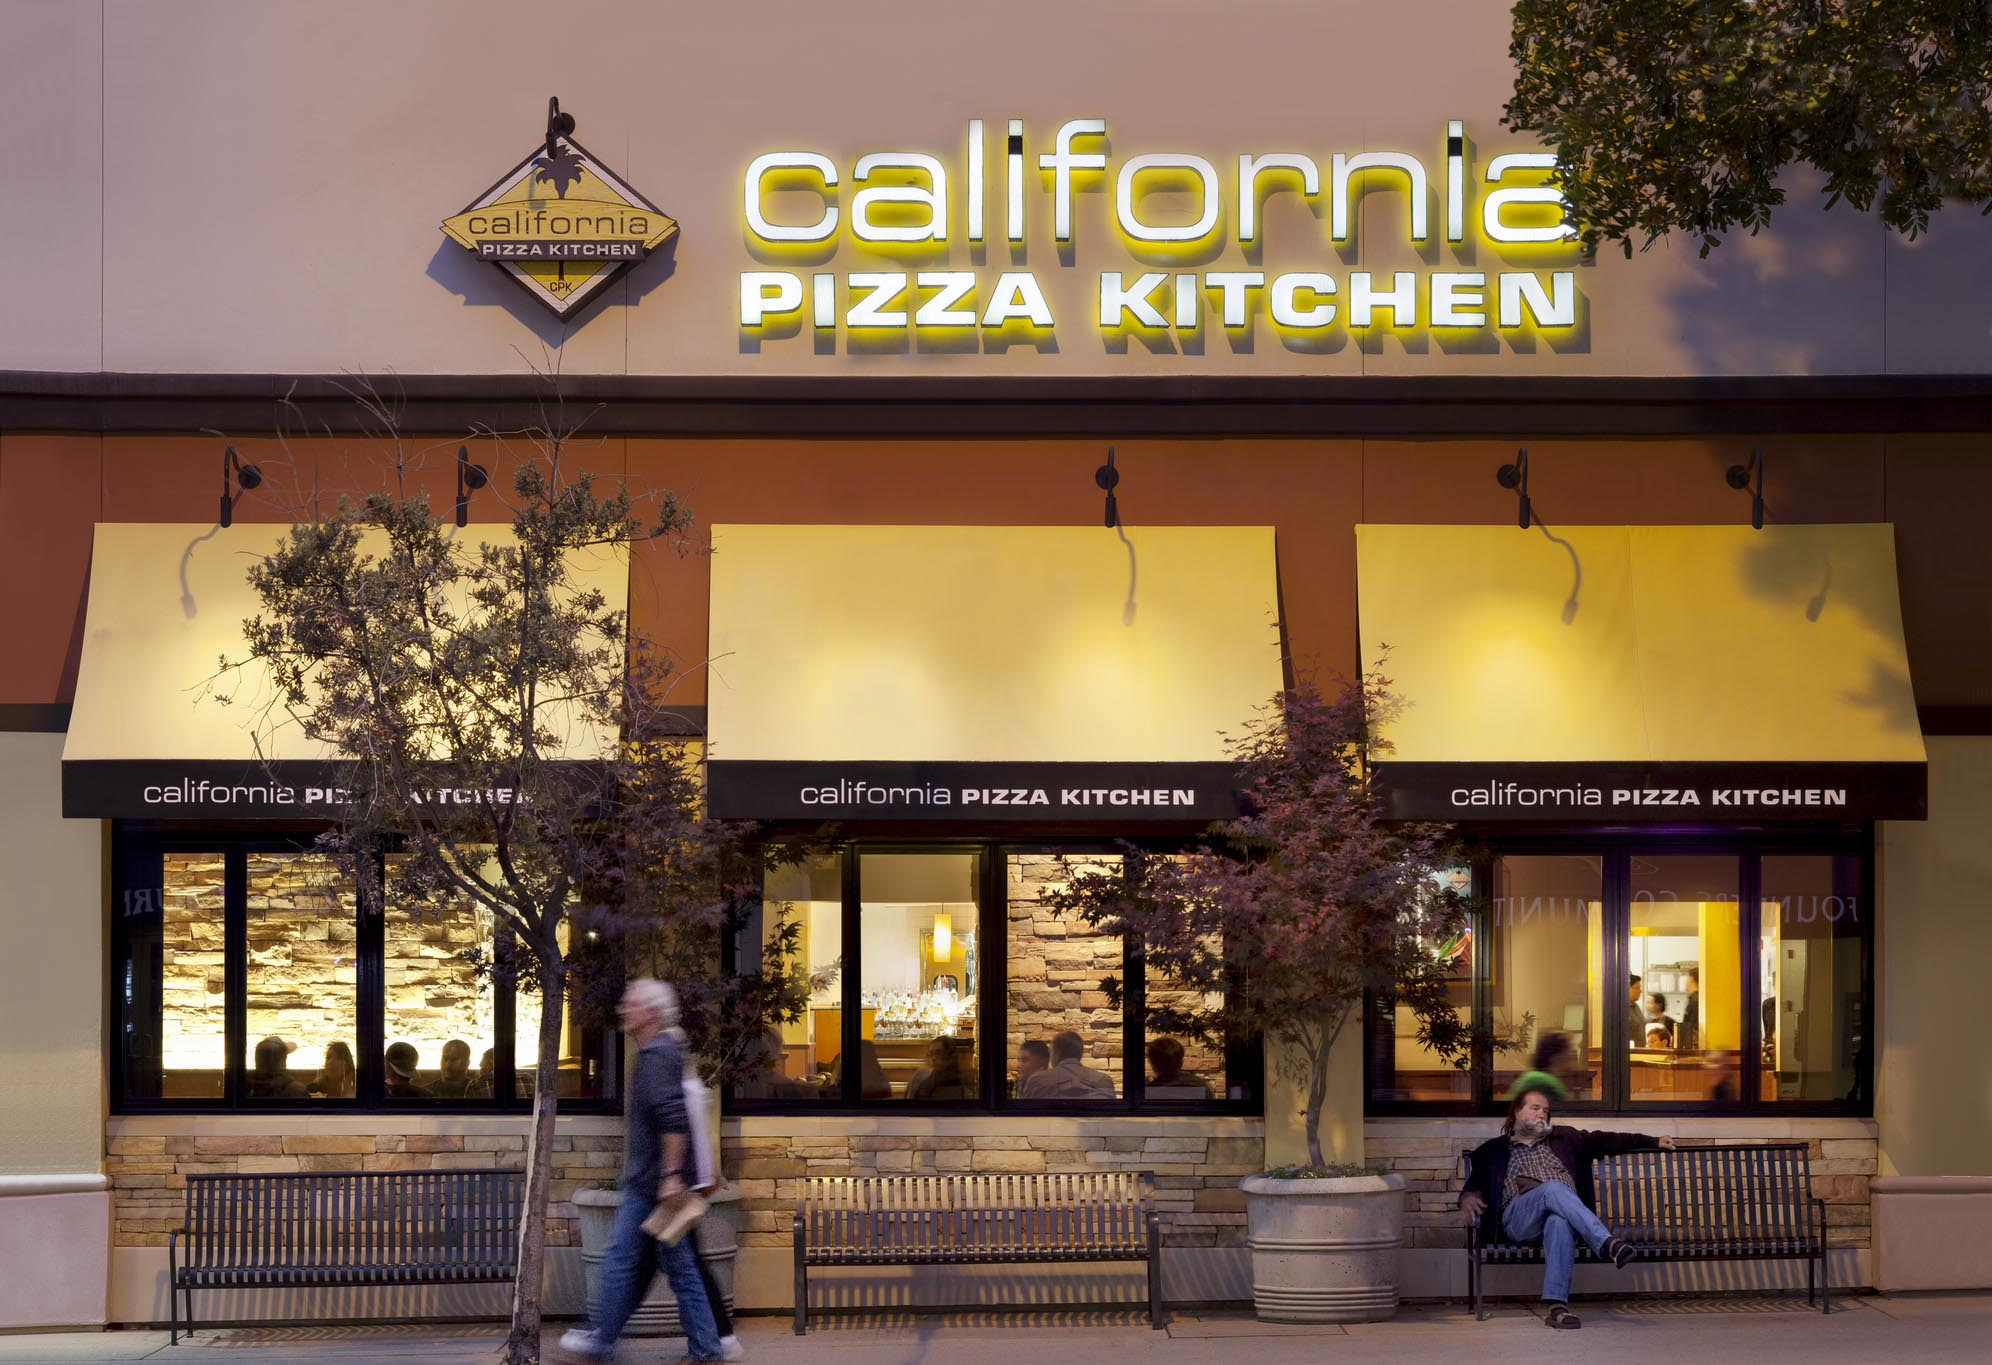 Restaurant Kitchen Gallery california pizza kitchen gallery | nanawall - operable glass wall